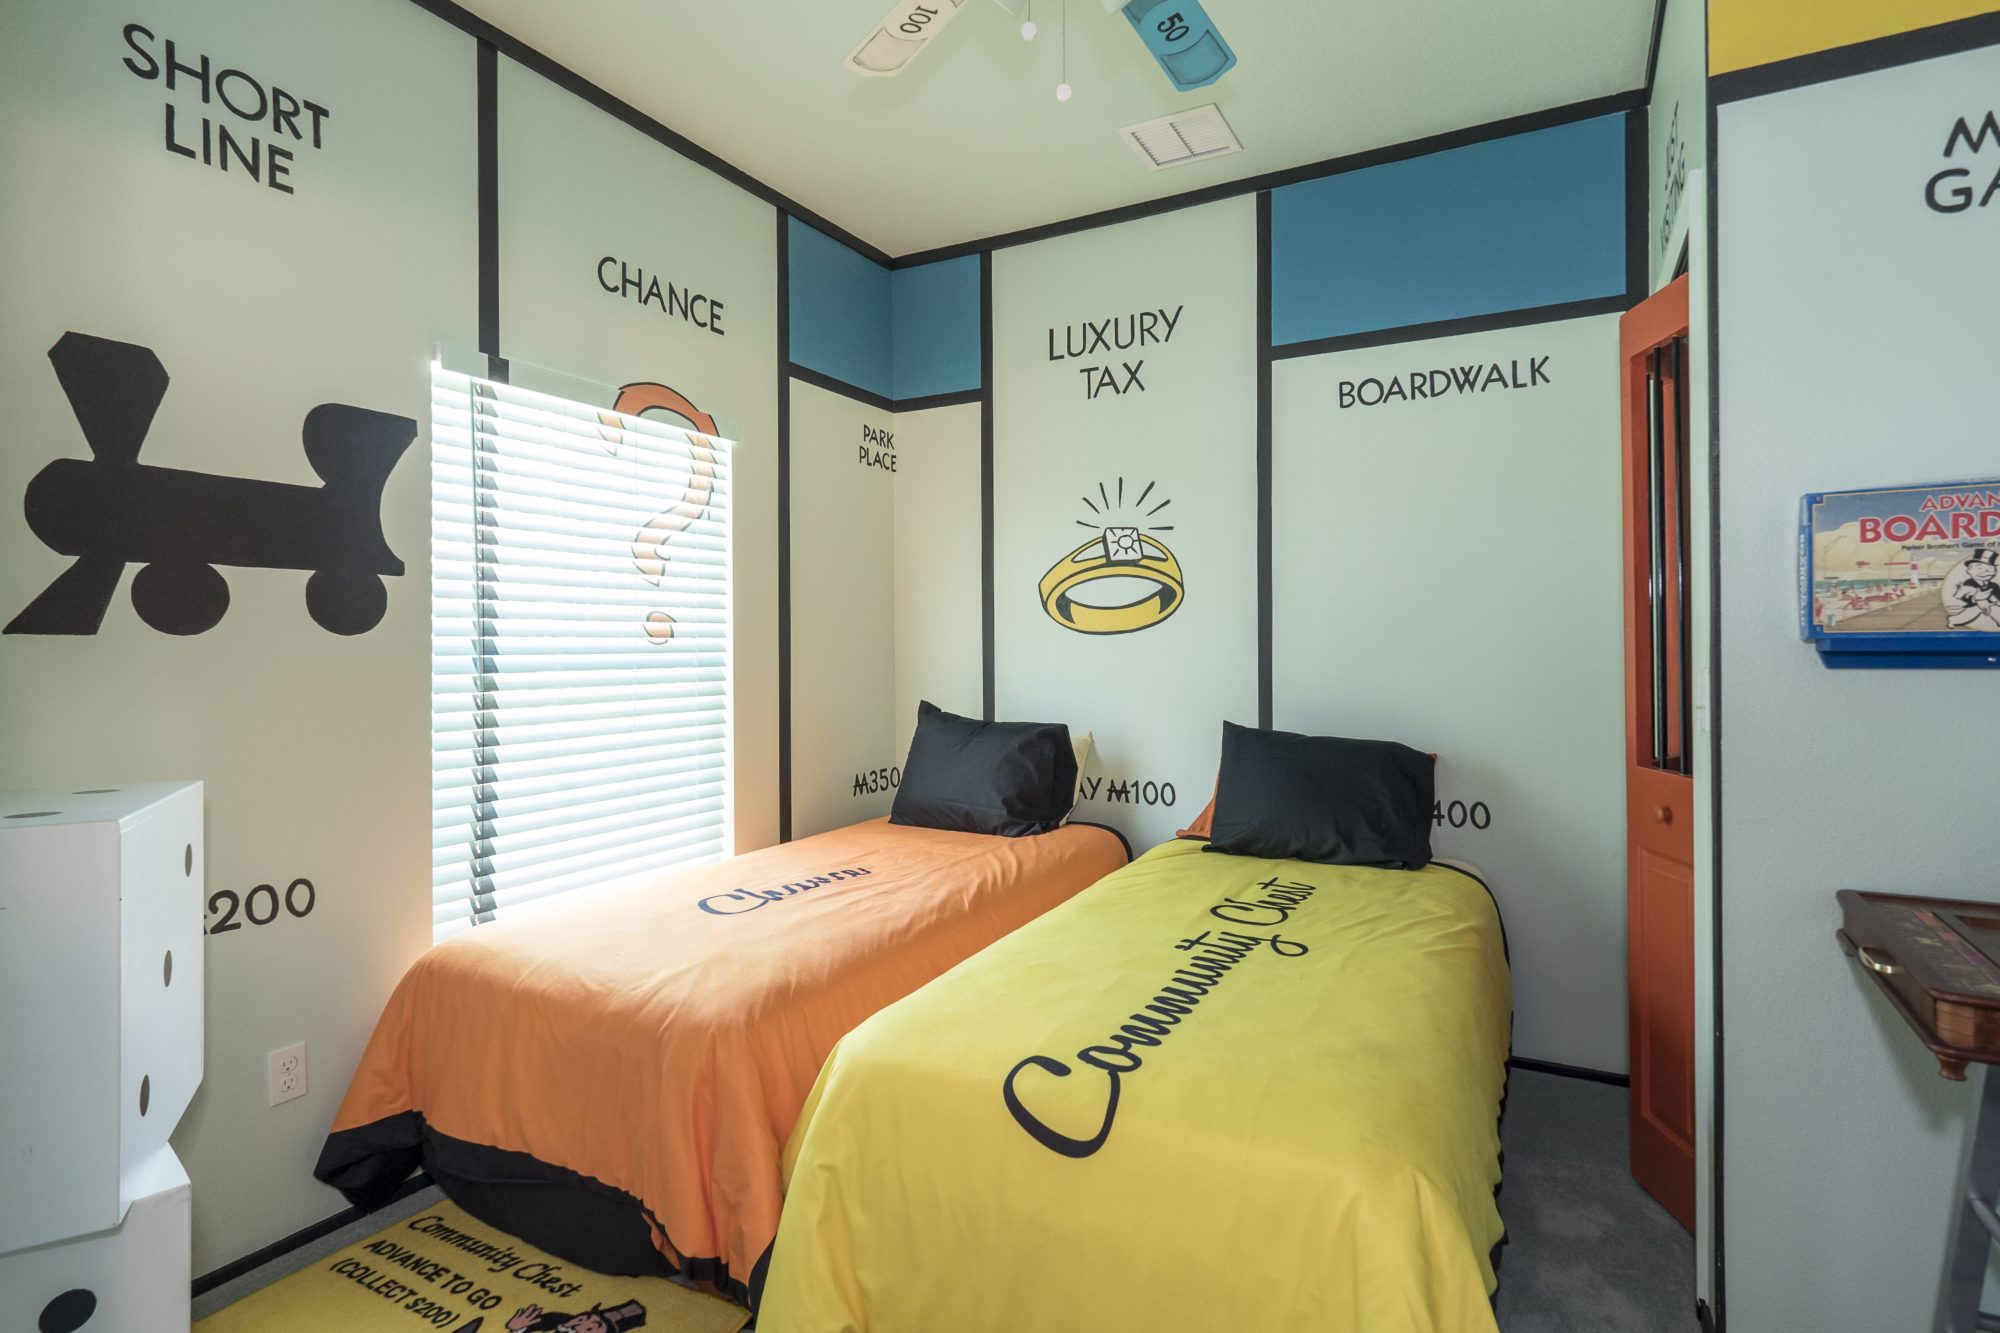 Southern Living Great Escape Lakeside Monopoly Bedroom